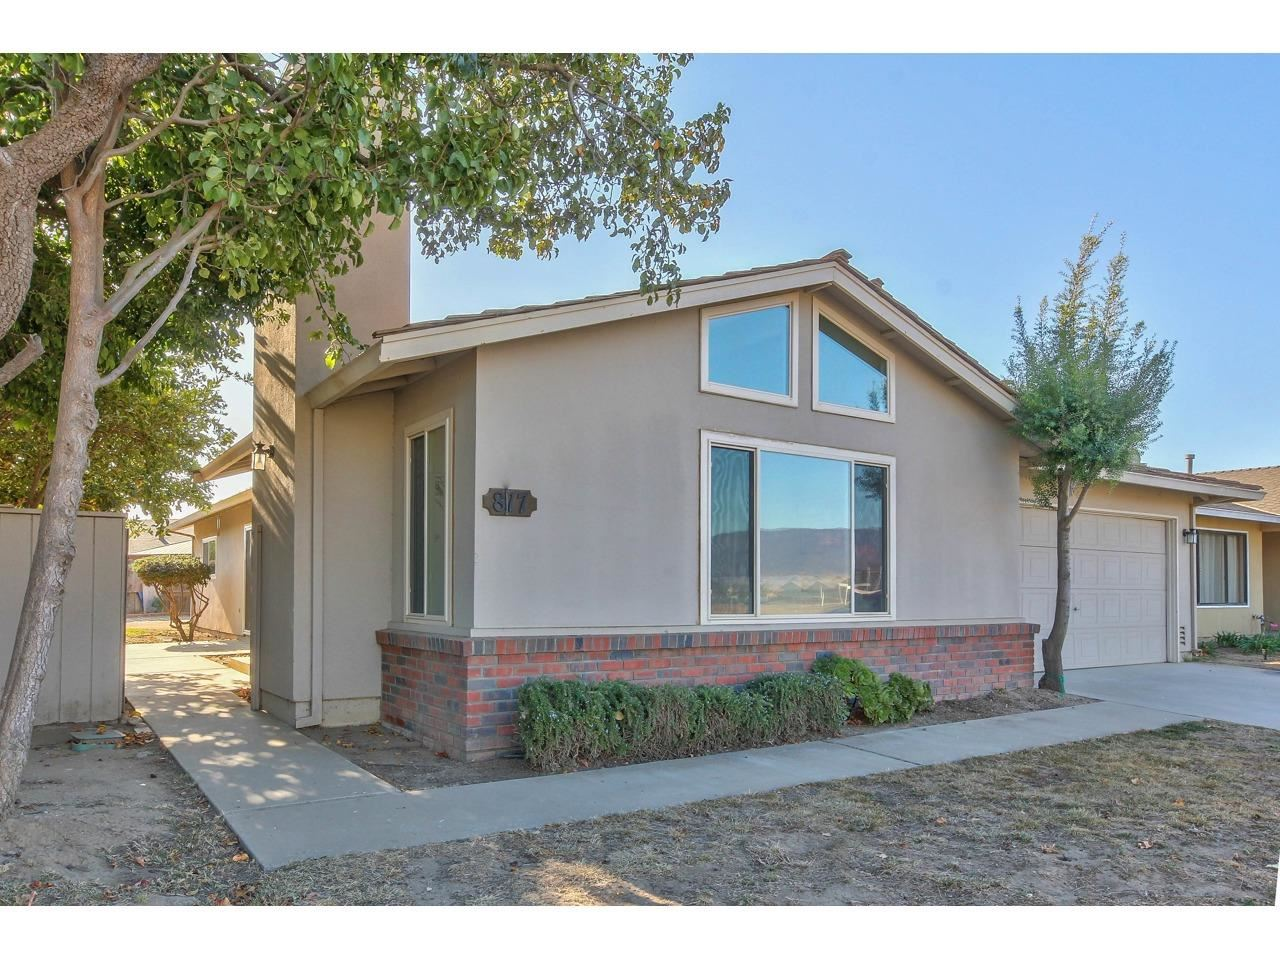 Photo for 817 Cherry, GREENFIELD, CA 93927 (MLS # ML81776304)